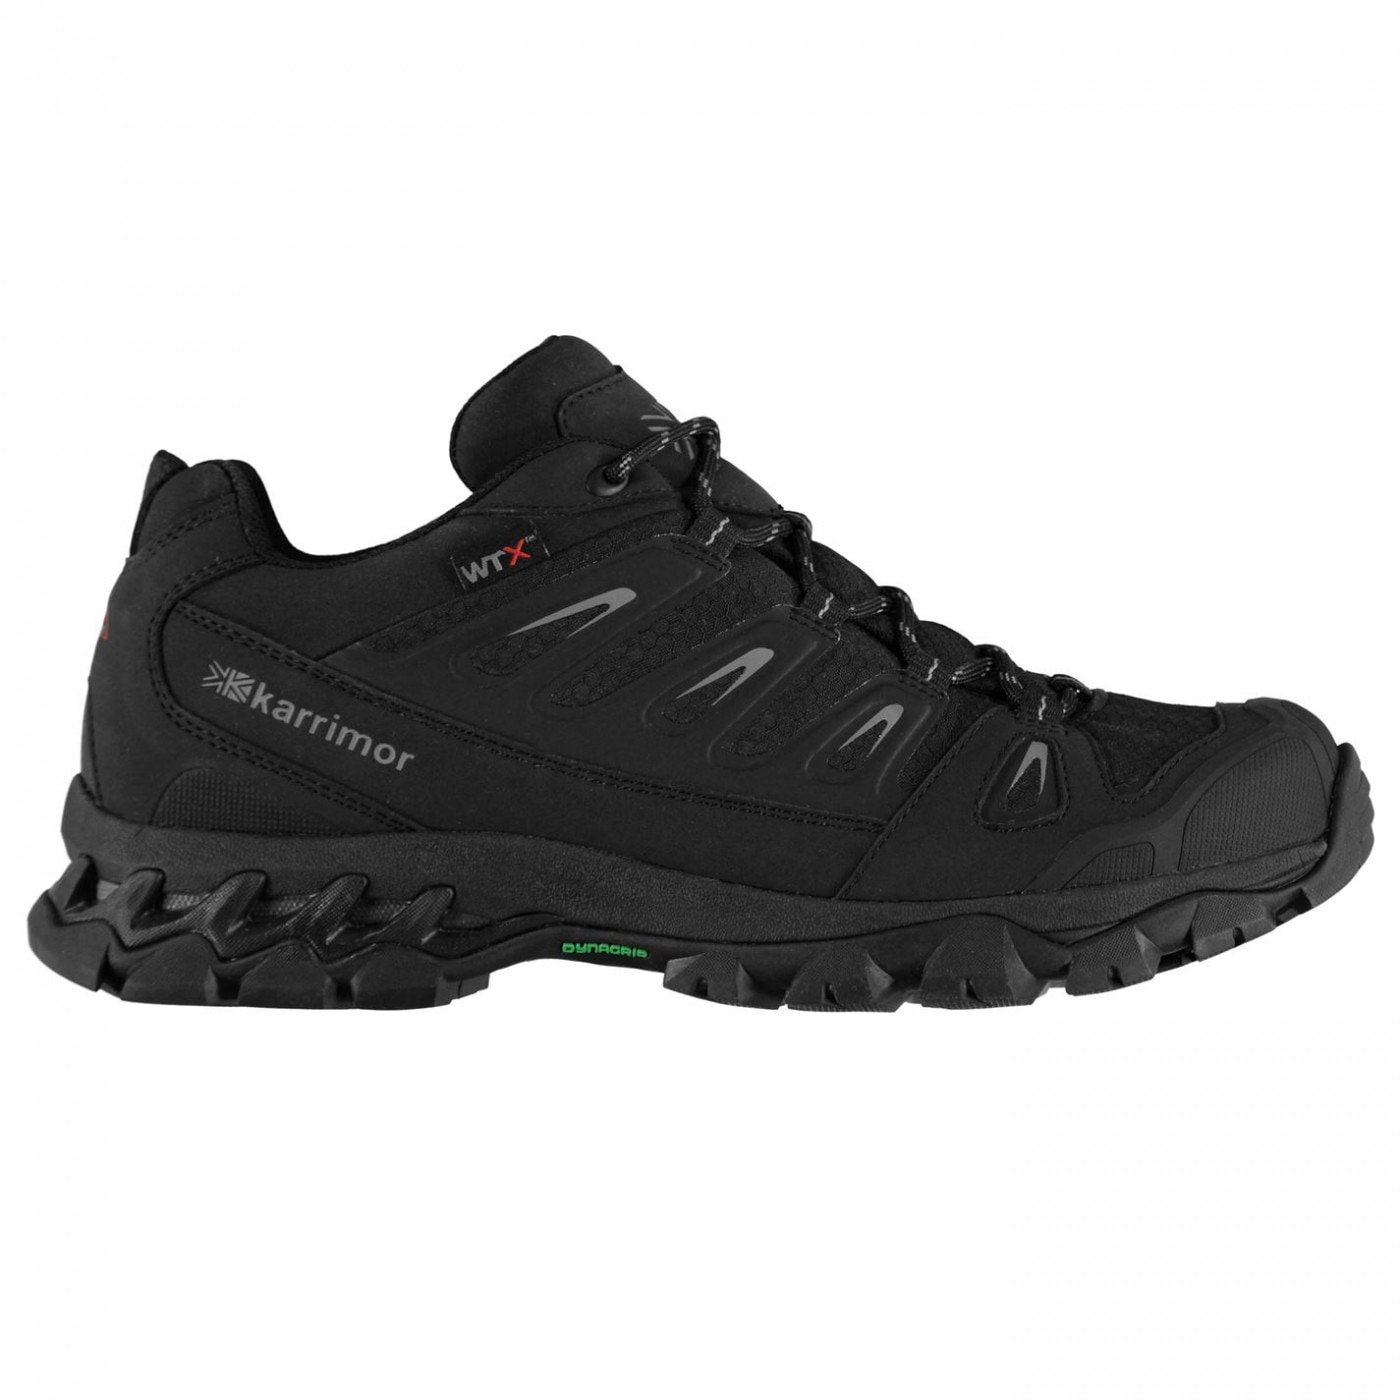 Karrimor Cougar WTX Walking Shoes Mens